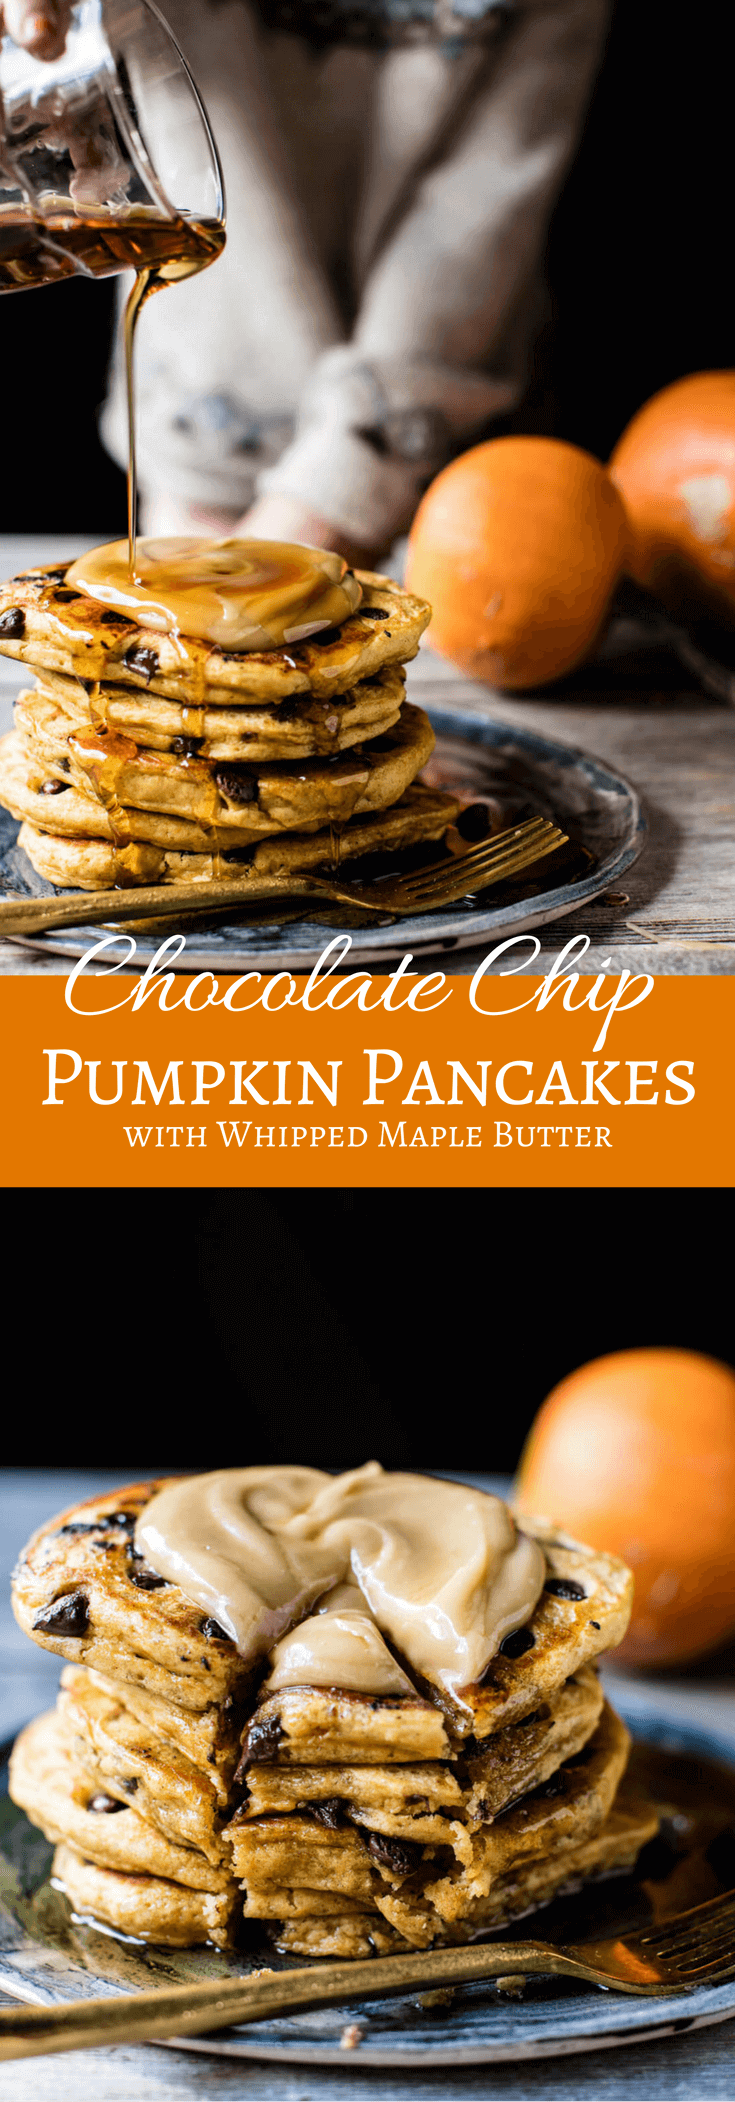 Chocolate Chip Pumpkin Pancakes with Whipped Maple Butter   halfbakedharvest.com @hbharvest